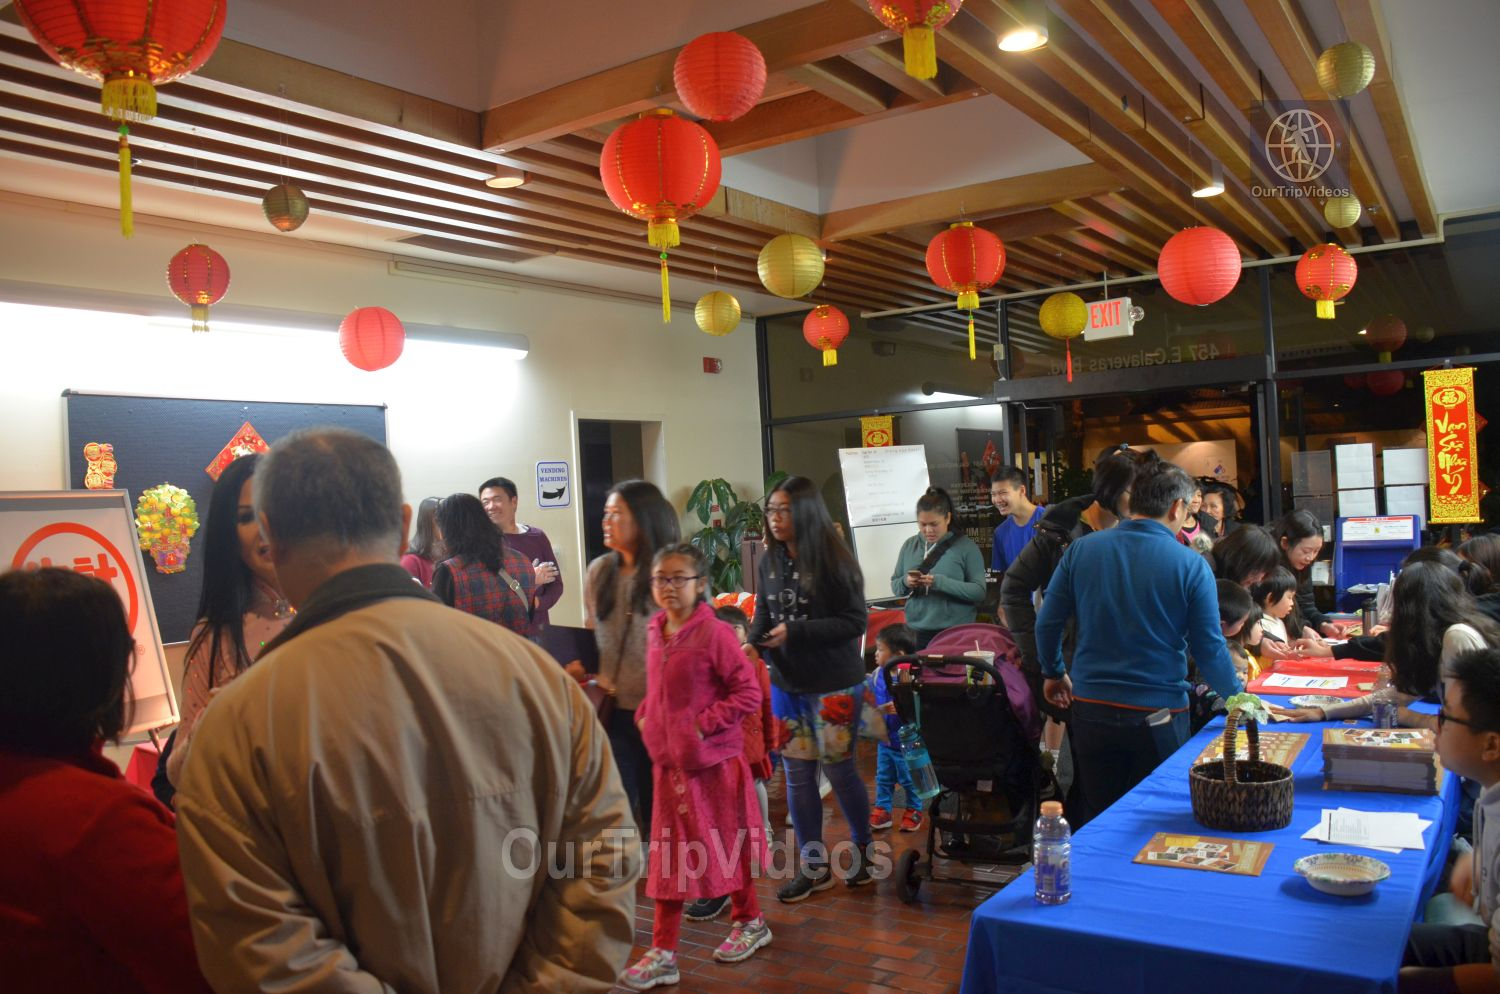 Chinese Lunar New Year Celebration, Milpitas, CA, USA - Picture 8 of 25